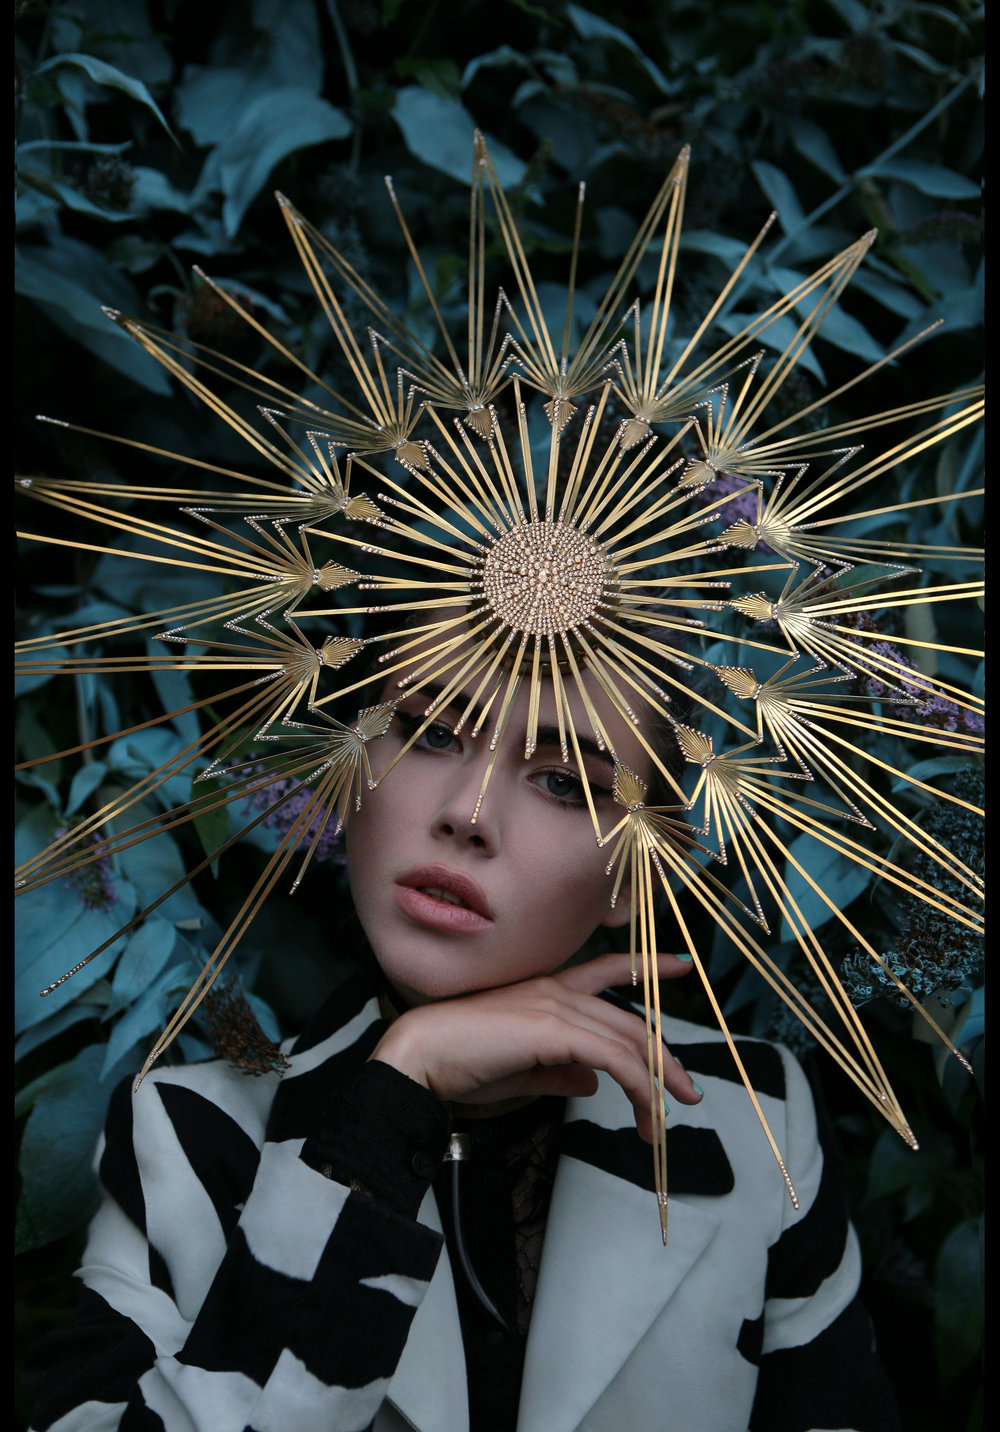 Art direction: Philip Treacy Photo: Kurtiss Lloyd